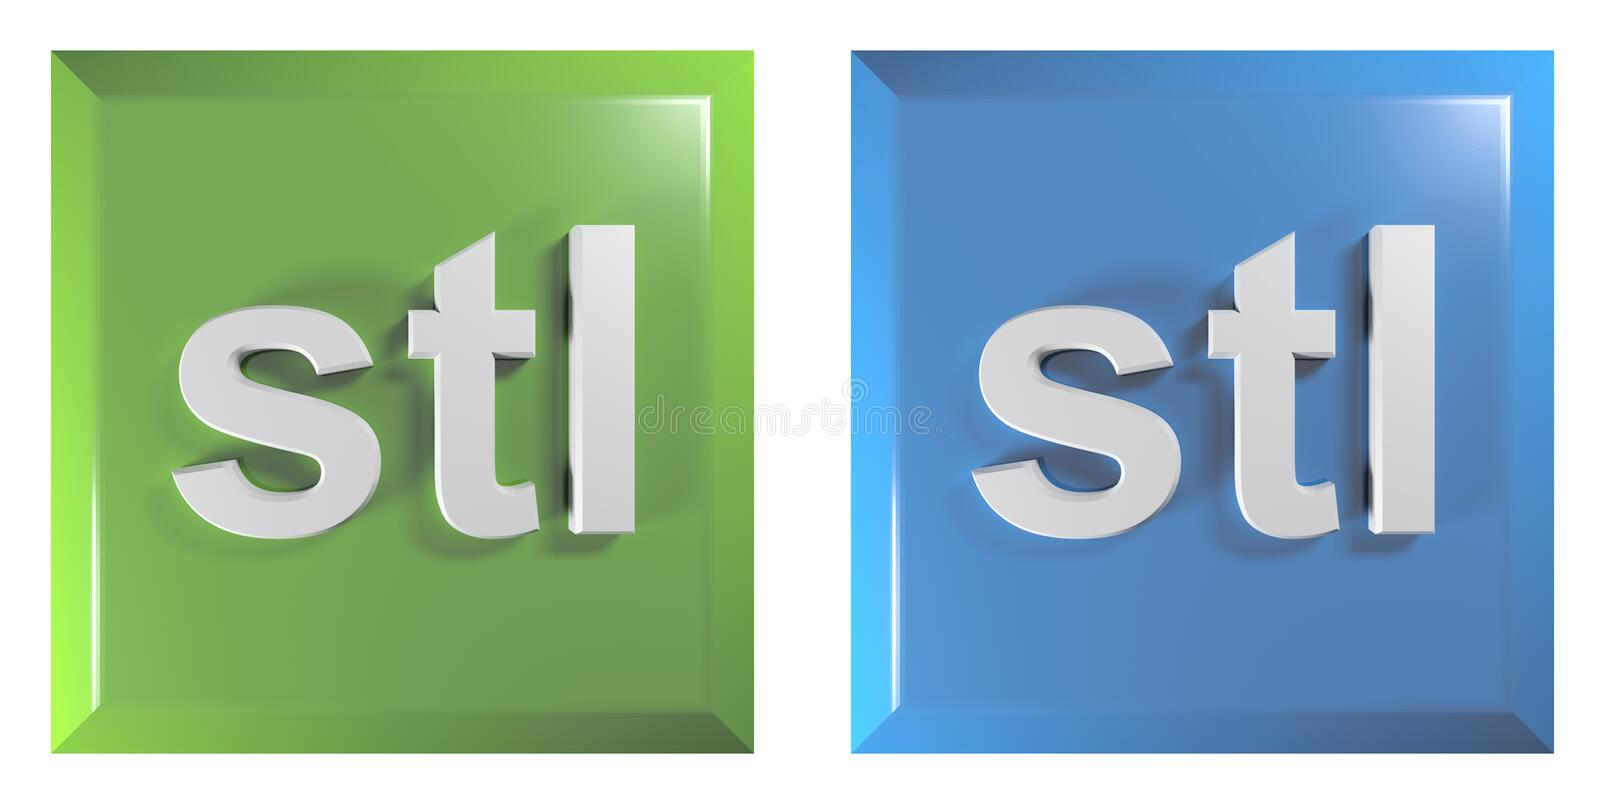 Push buttons for STL files, green and blue, square - 3D rendering illustration vector illustration